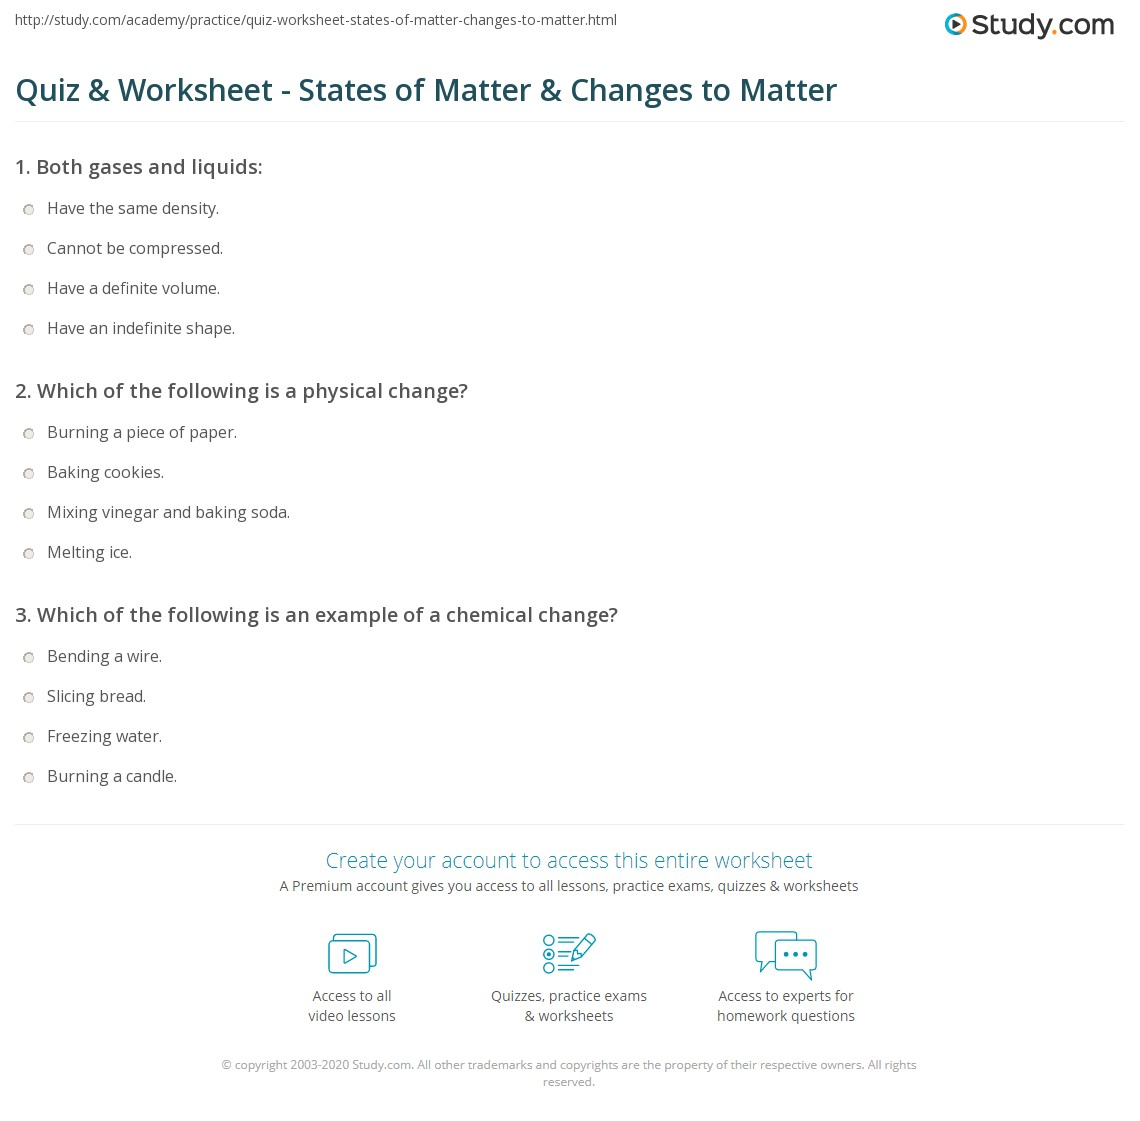 quiz worksheet states of matter changes to matter. Black Bedroom Furniture Sets. Home Design Ideas